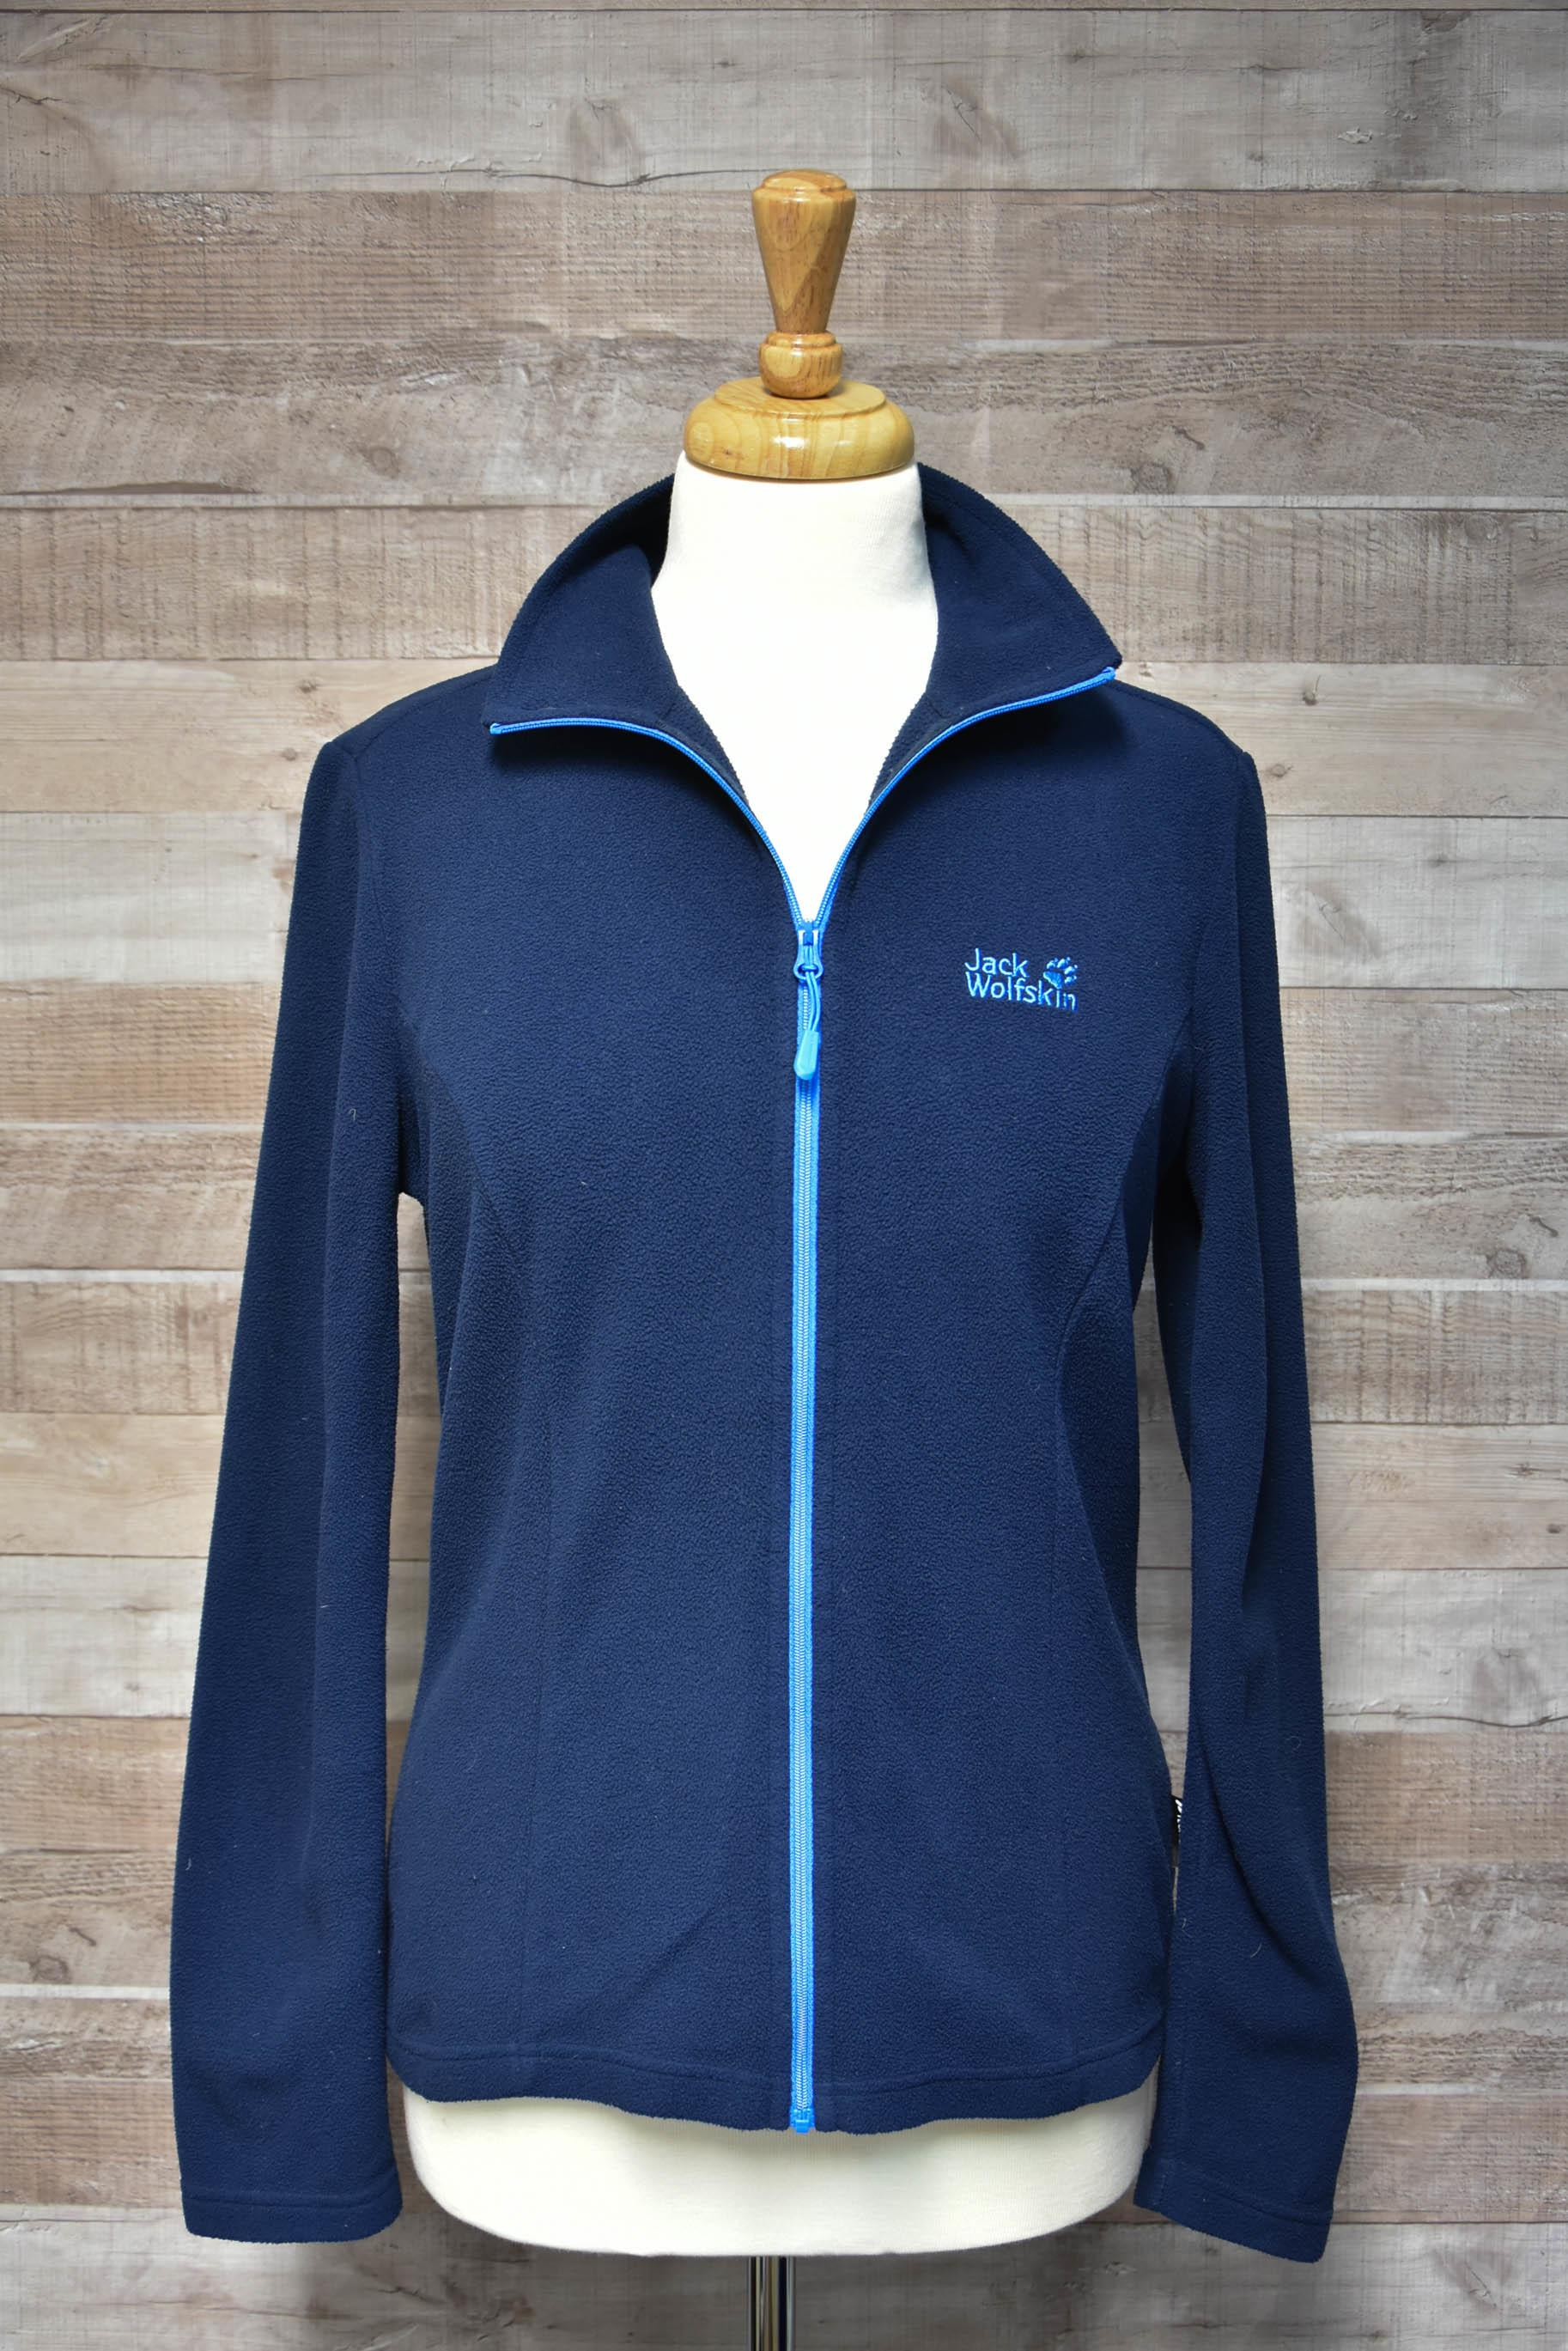 Jack Wolfskin Navy Ladies Zipped Fleece Size 1227-01-2021 at 10.23.02 6